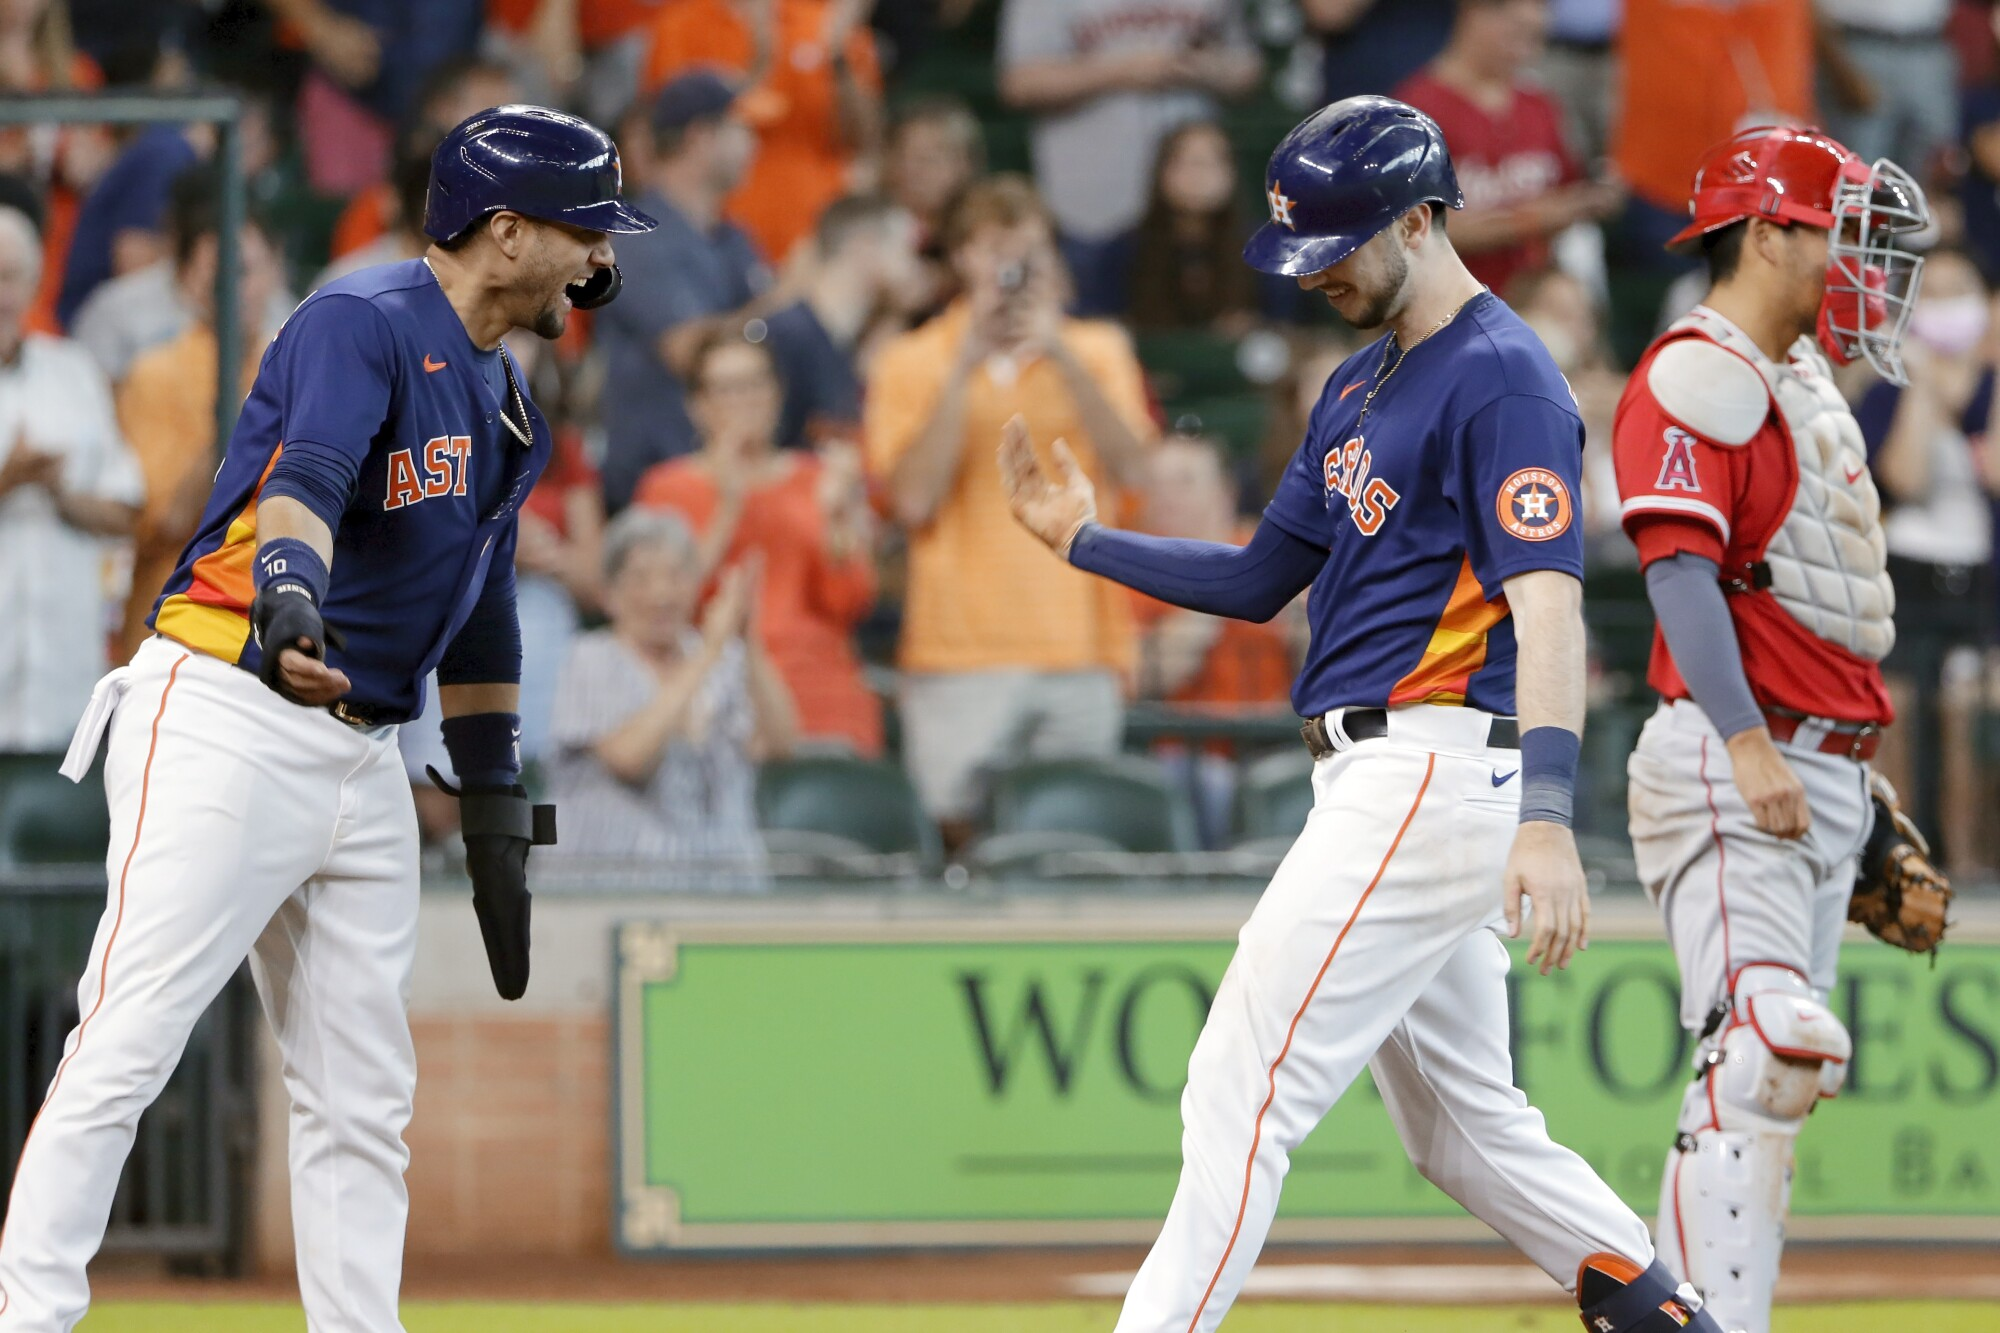 Houston's Kyle Tucker, right, celebrates with teammate Yuli Gurriel after hitting a two-run home run.